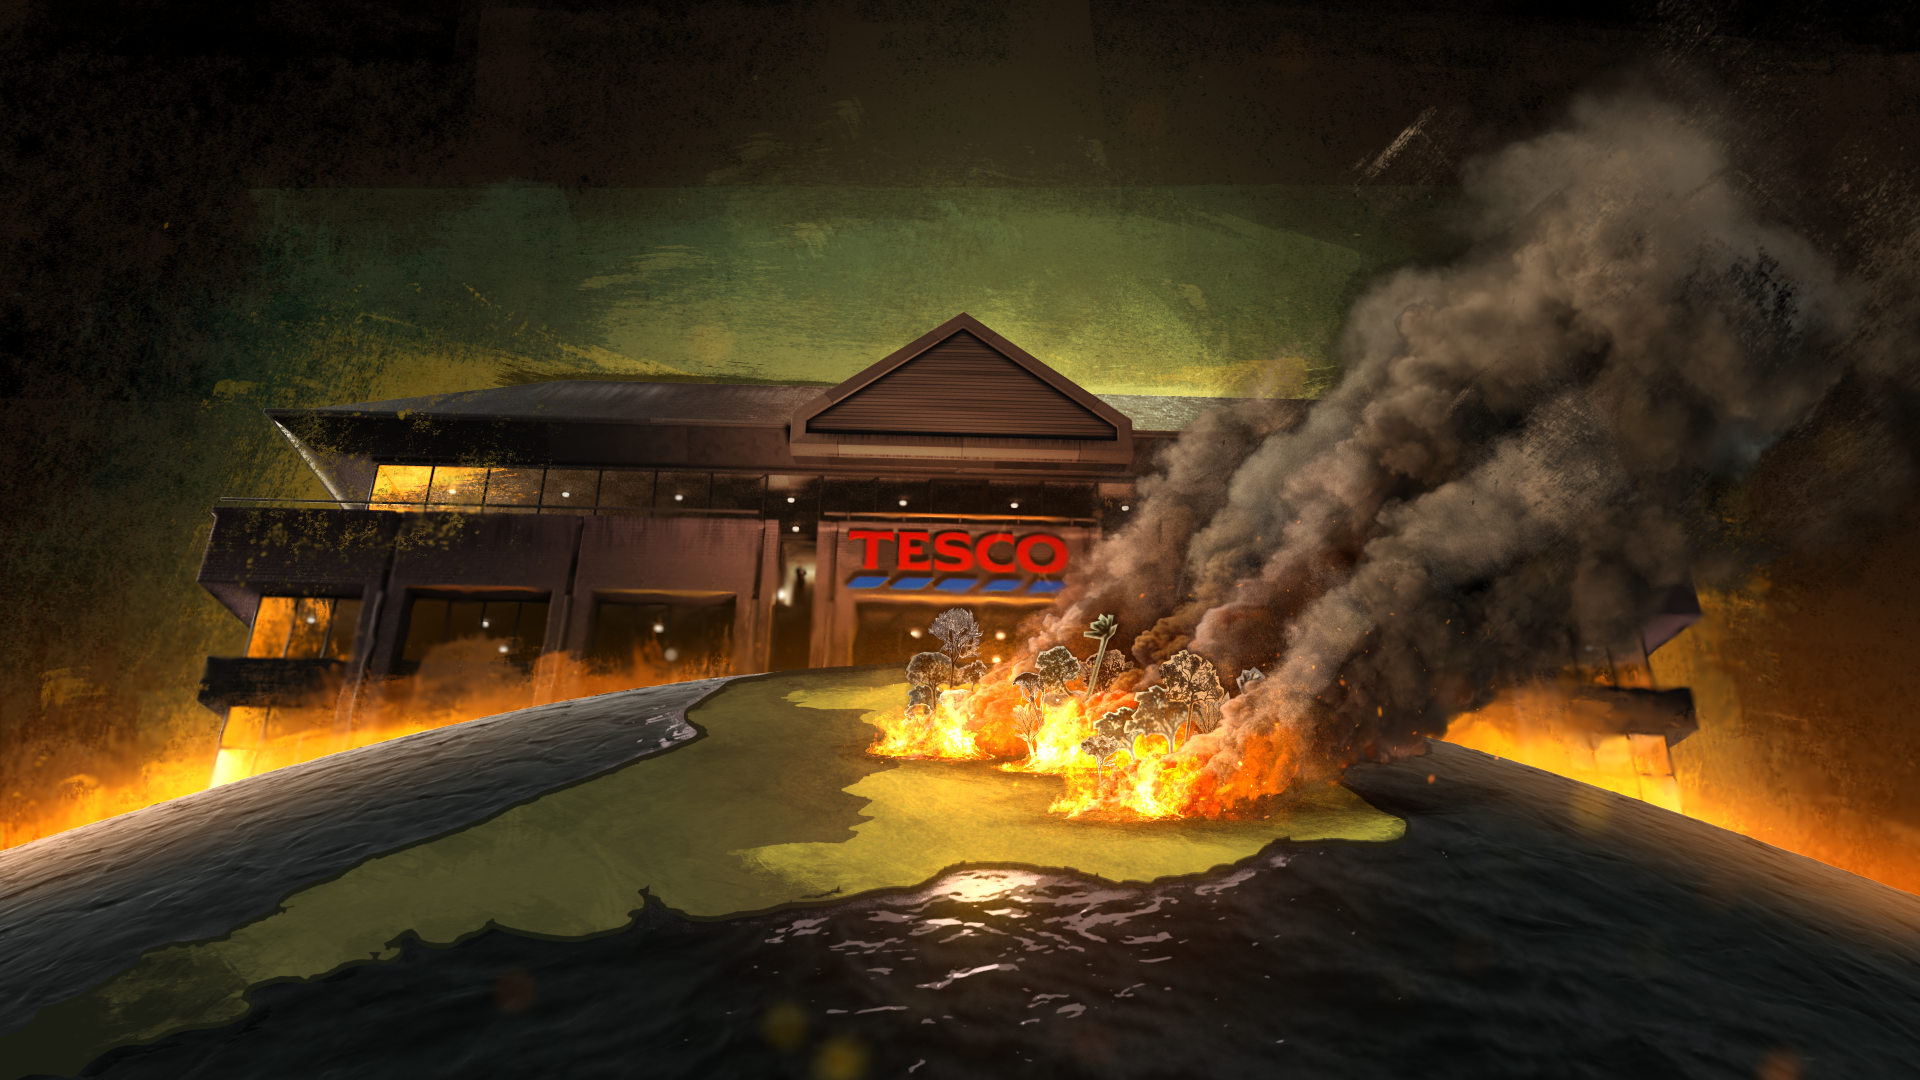 Still from Tesco's burning secret film. On an animated globe, Brazil is seen on fire in the foreground, a very large Tesco building looms in the dark background.